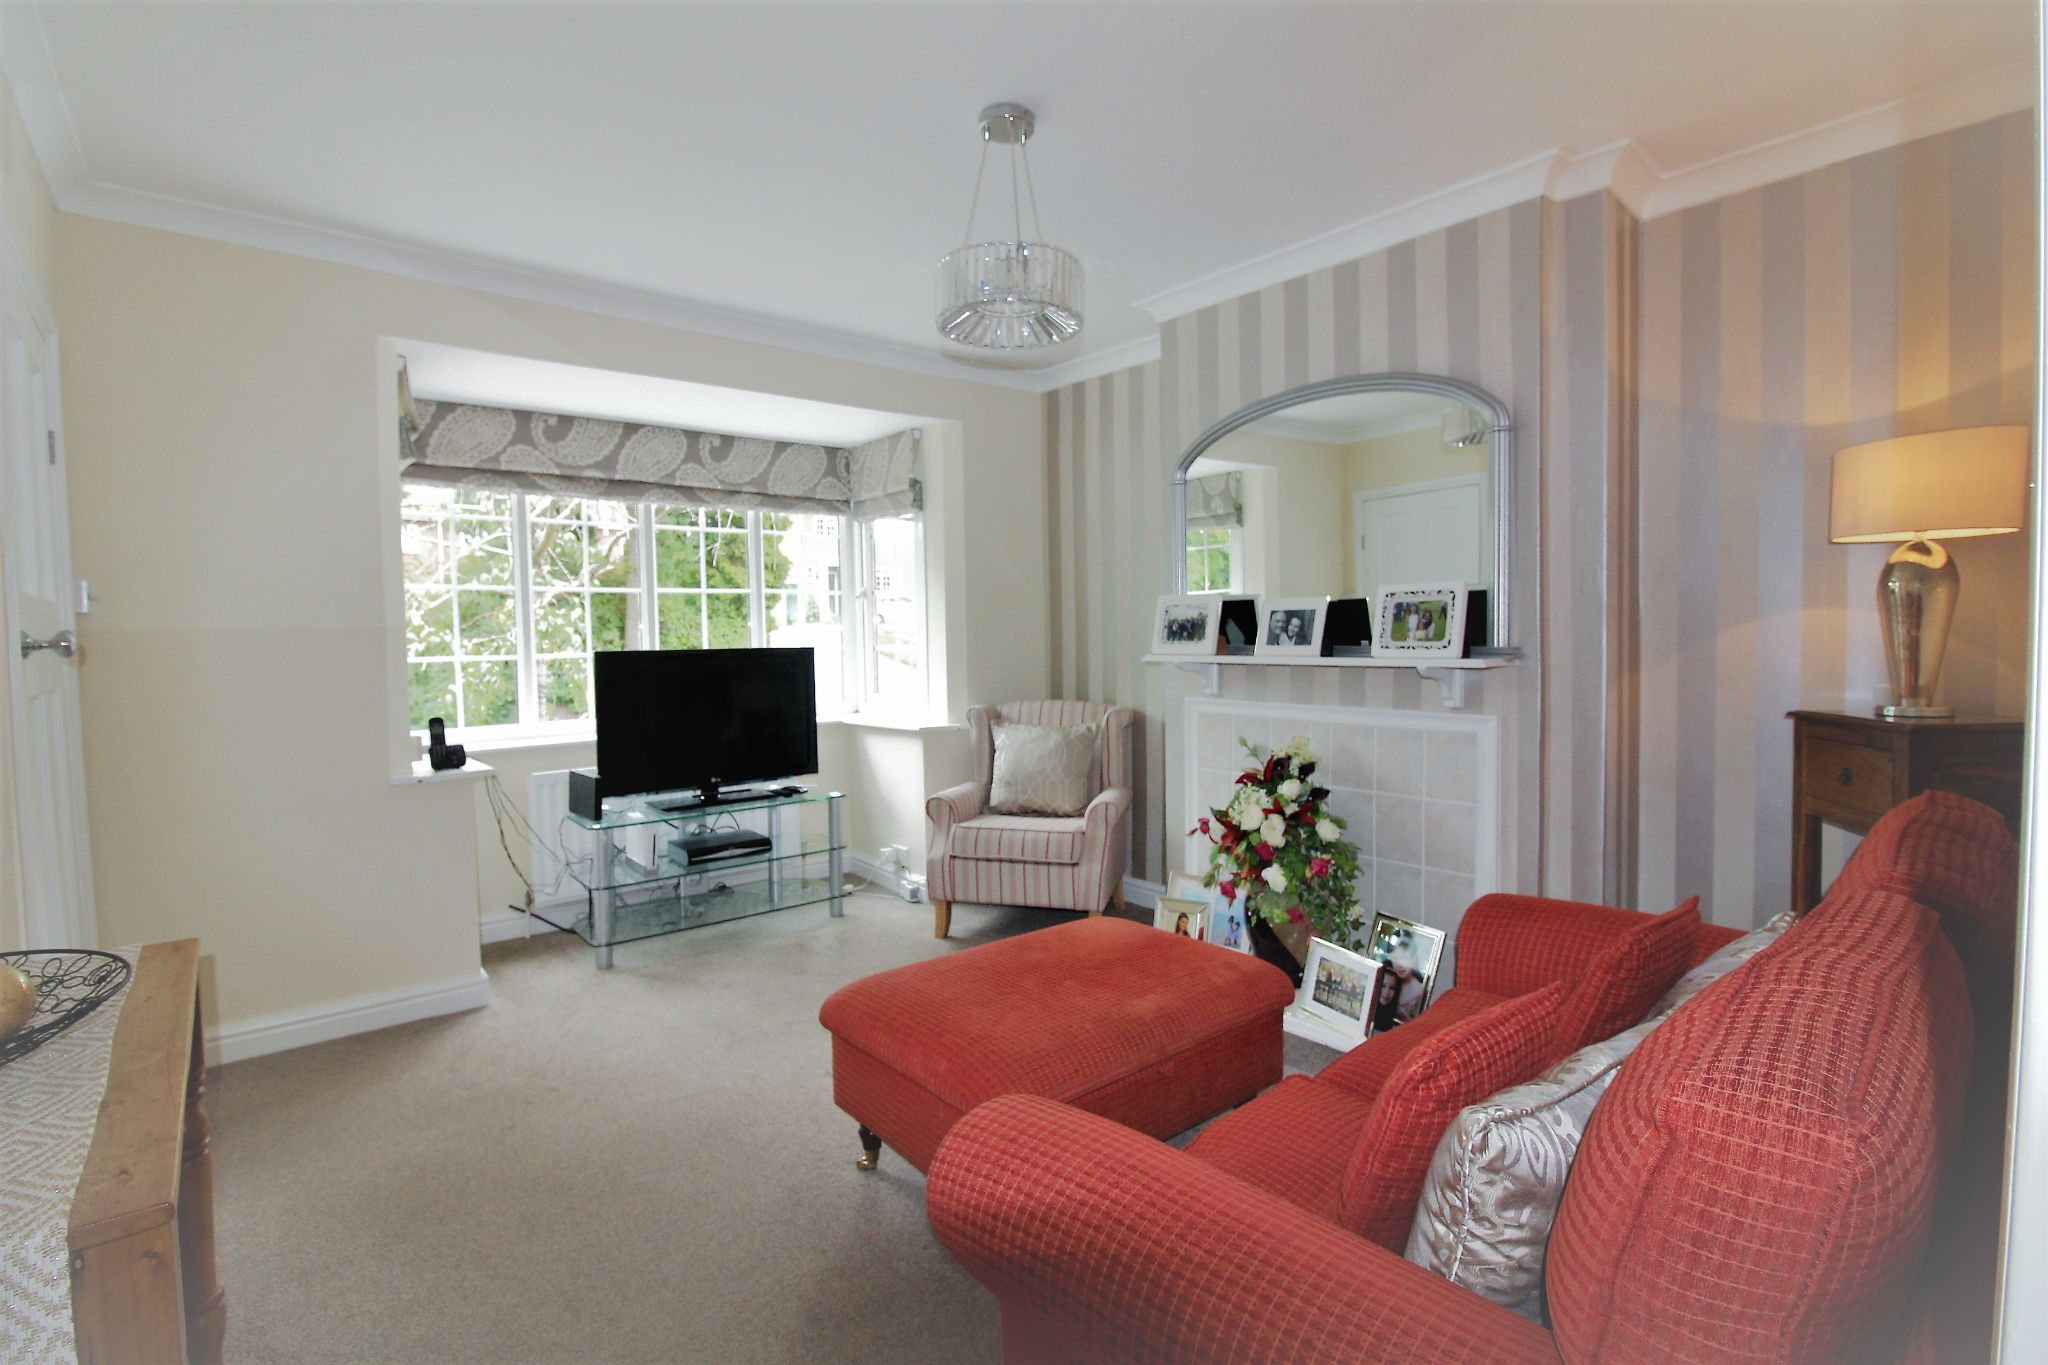 4 bedroom semi-detached house SSTC in Solihull - Photograph 4.